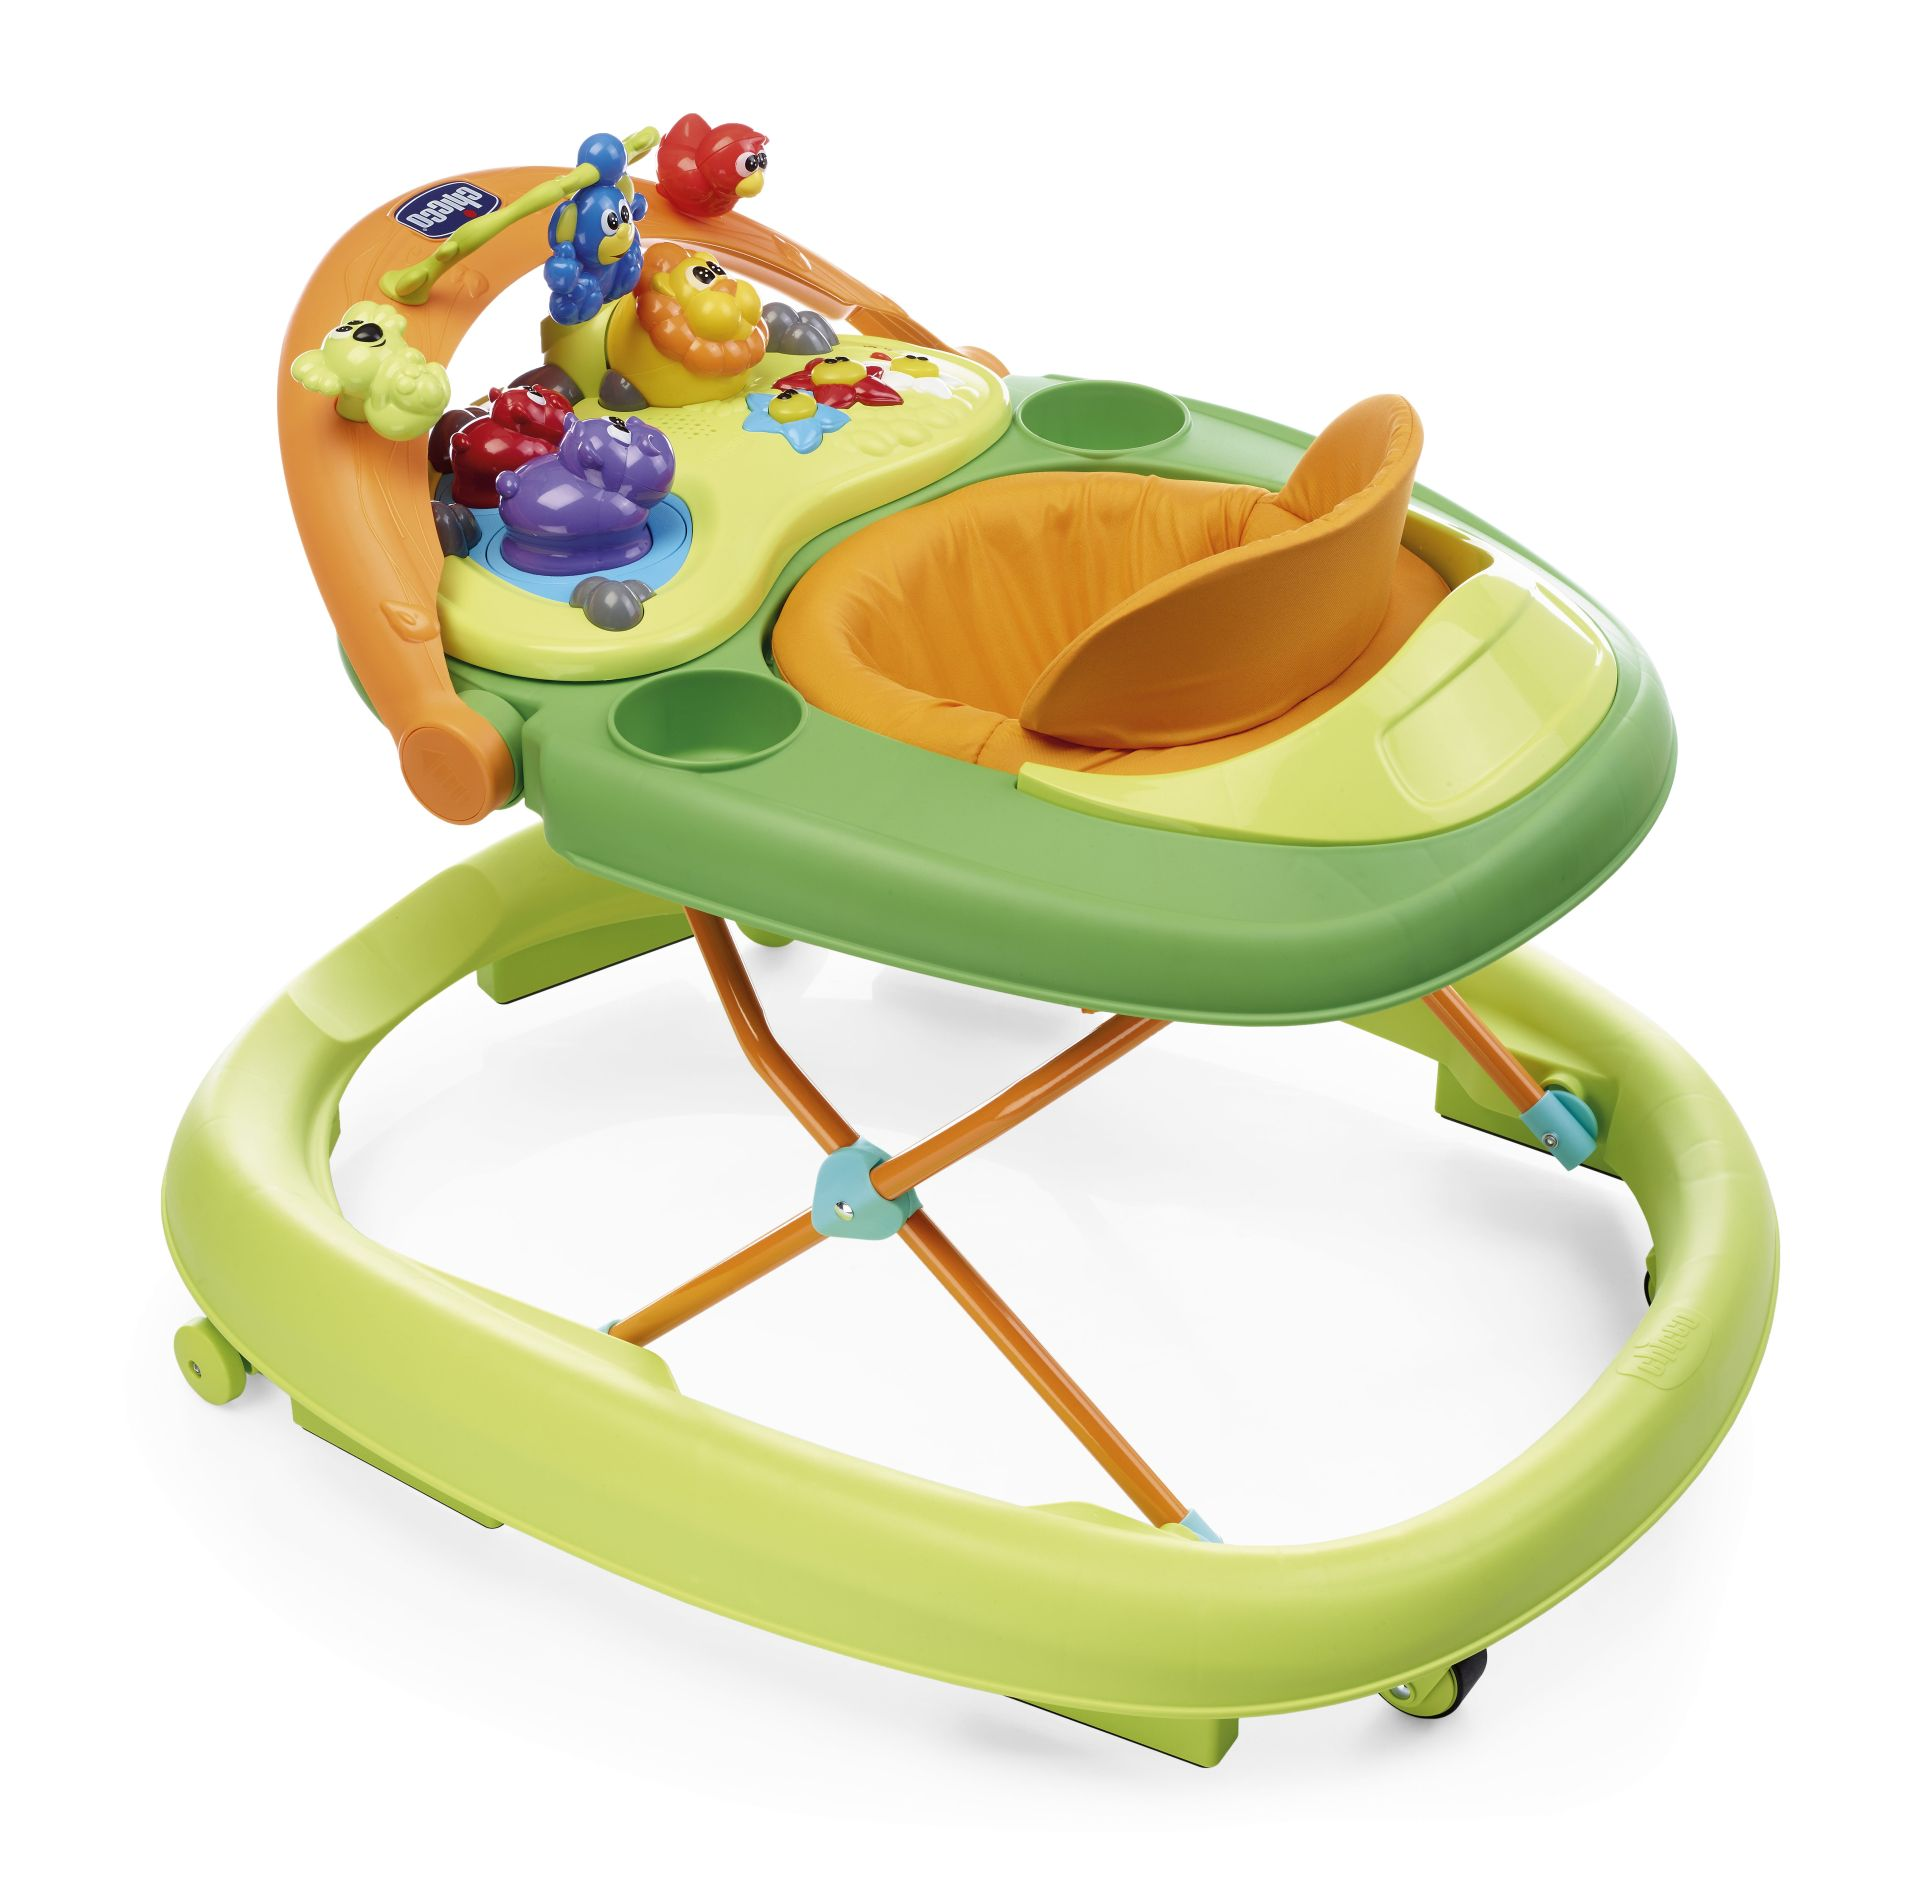 Chicco Baby Walker Walky Talky 2018 Green Wave Buy at kidsroom